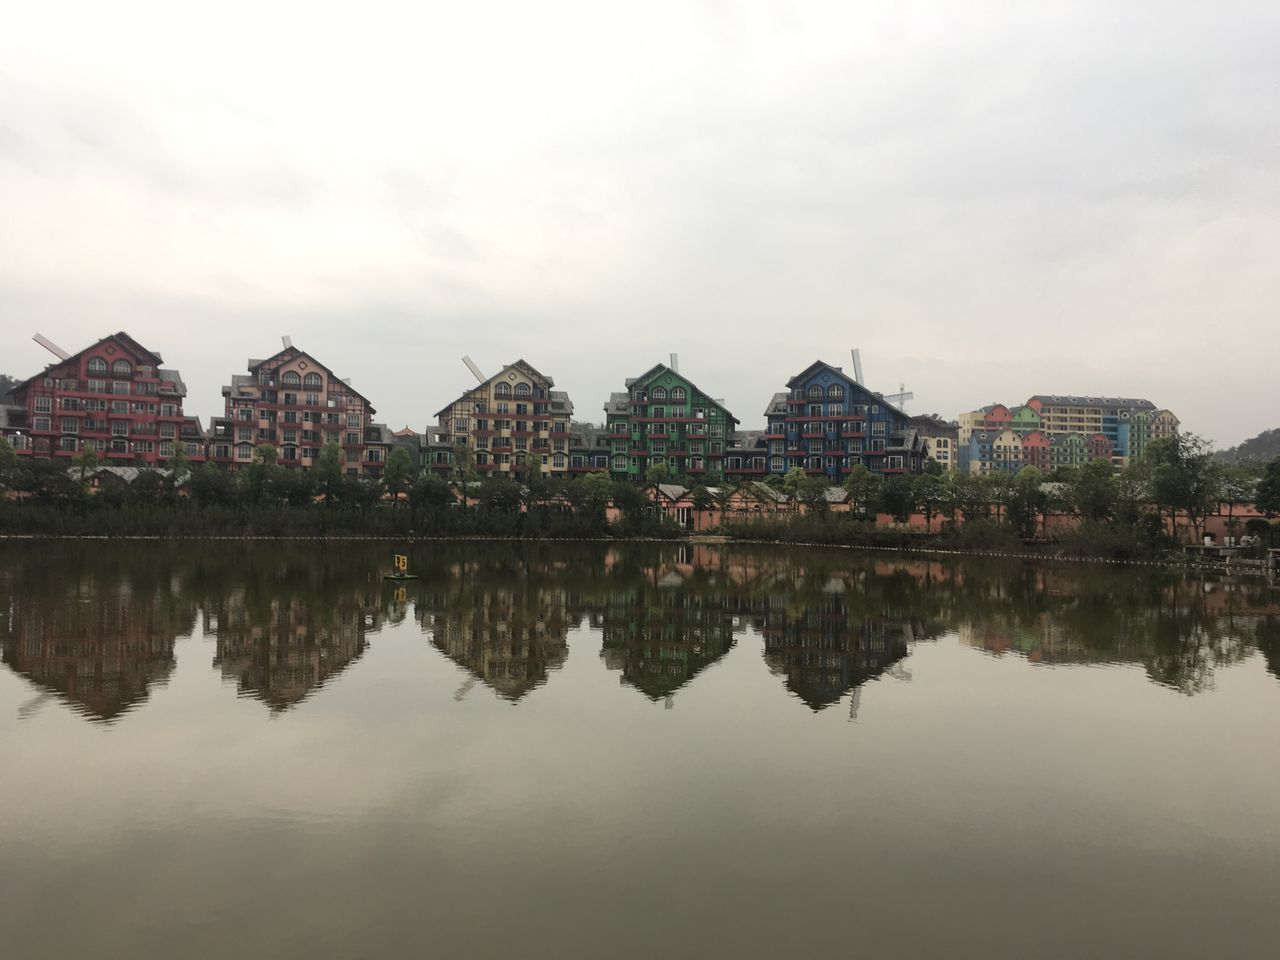 Architecture Built Structure Building Exterior Reflection Sky Water No People Outdoors Day Lake Nature City